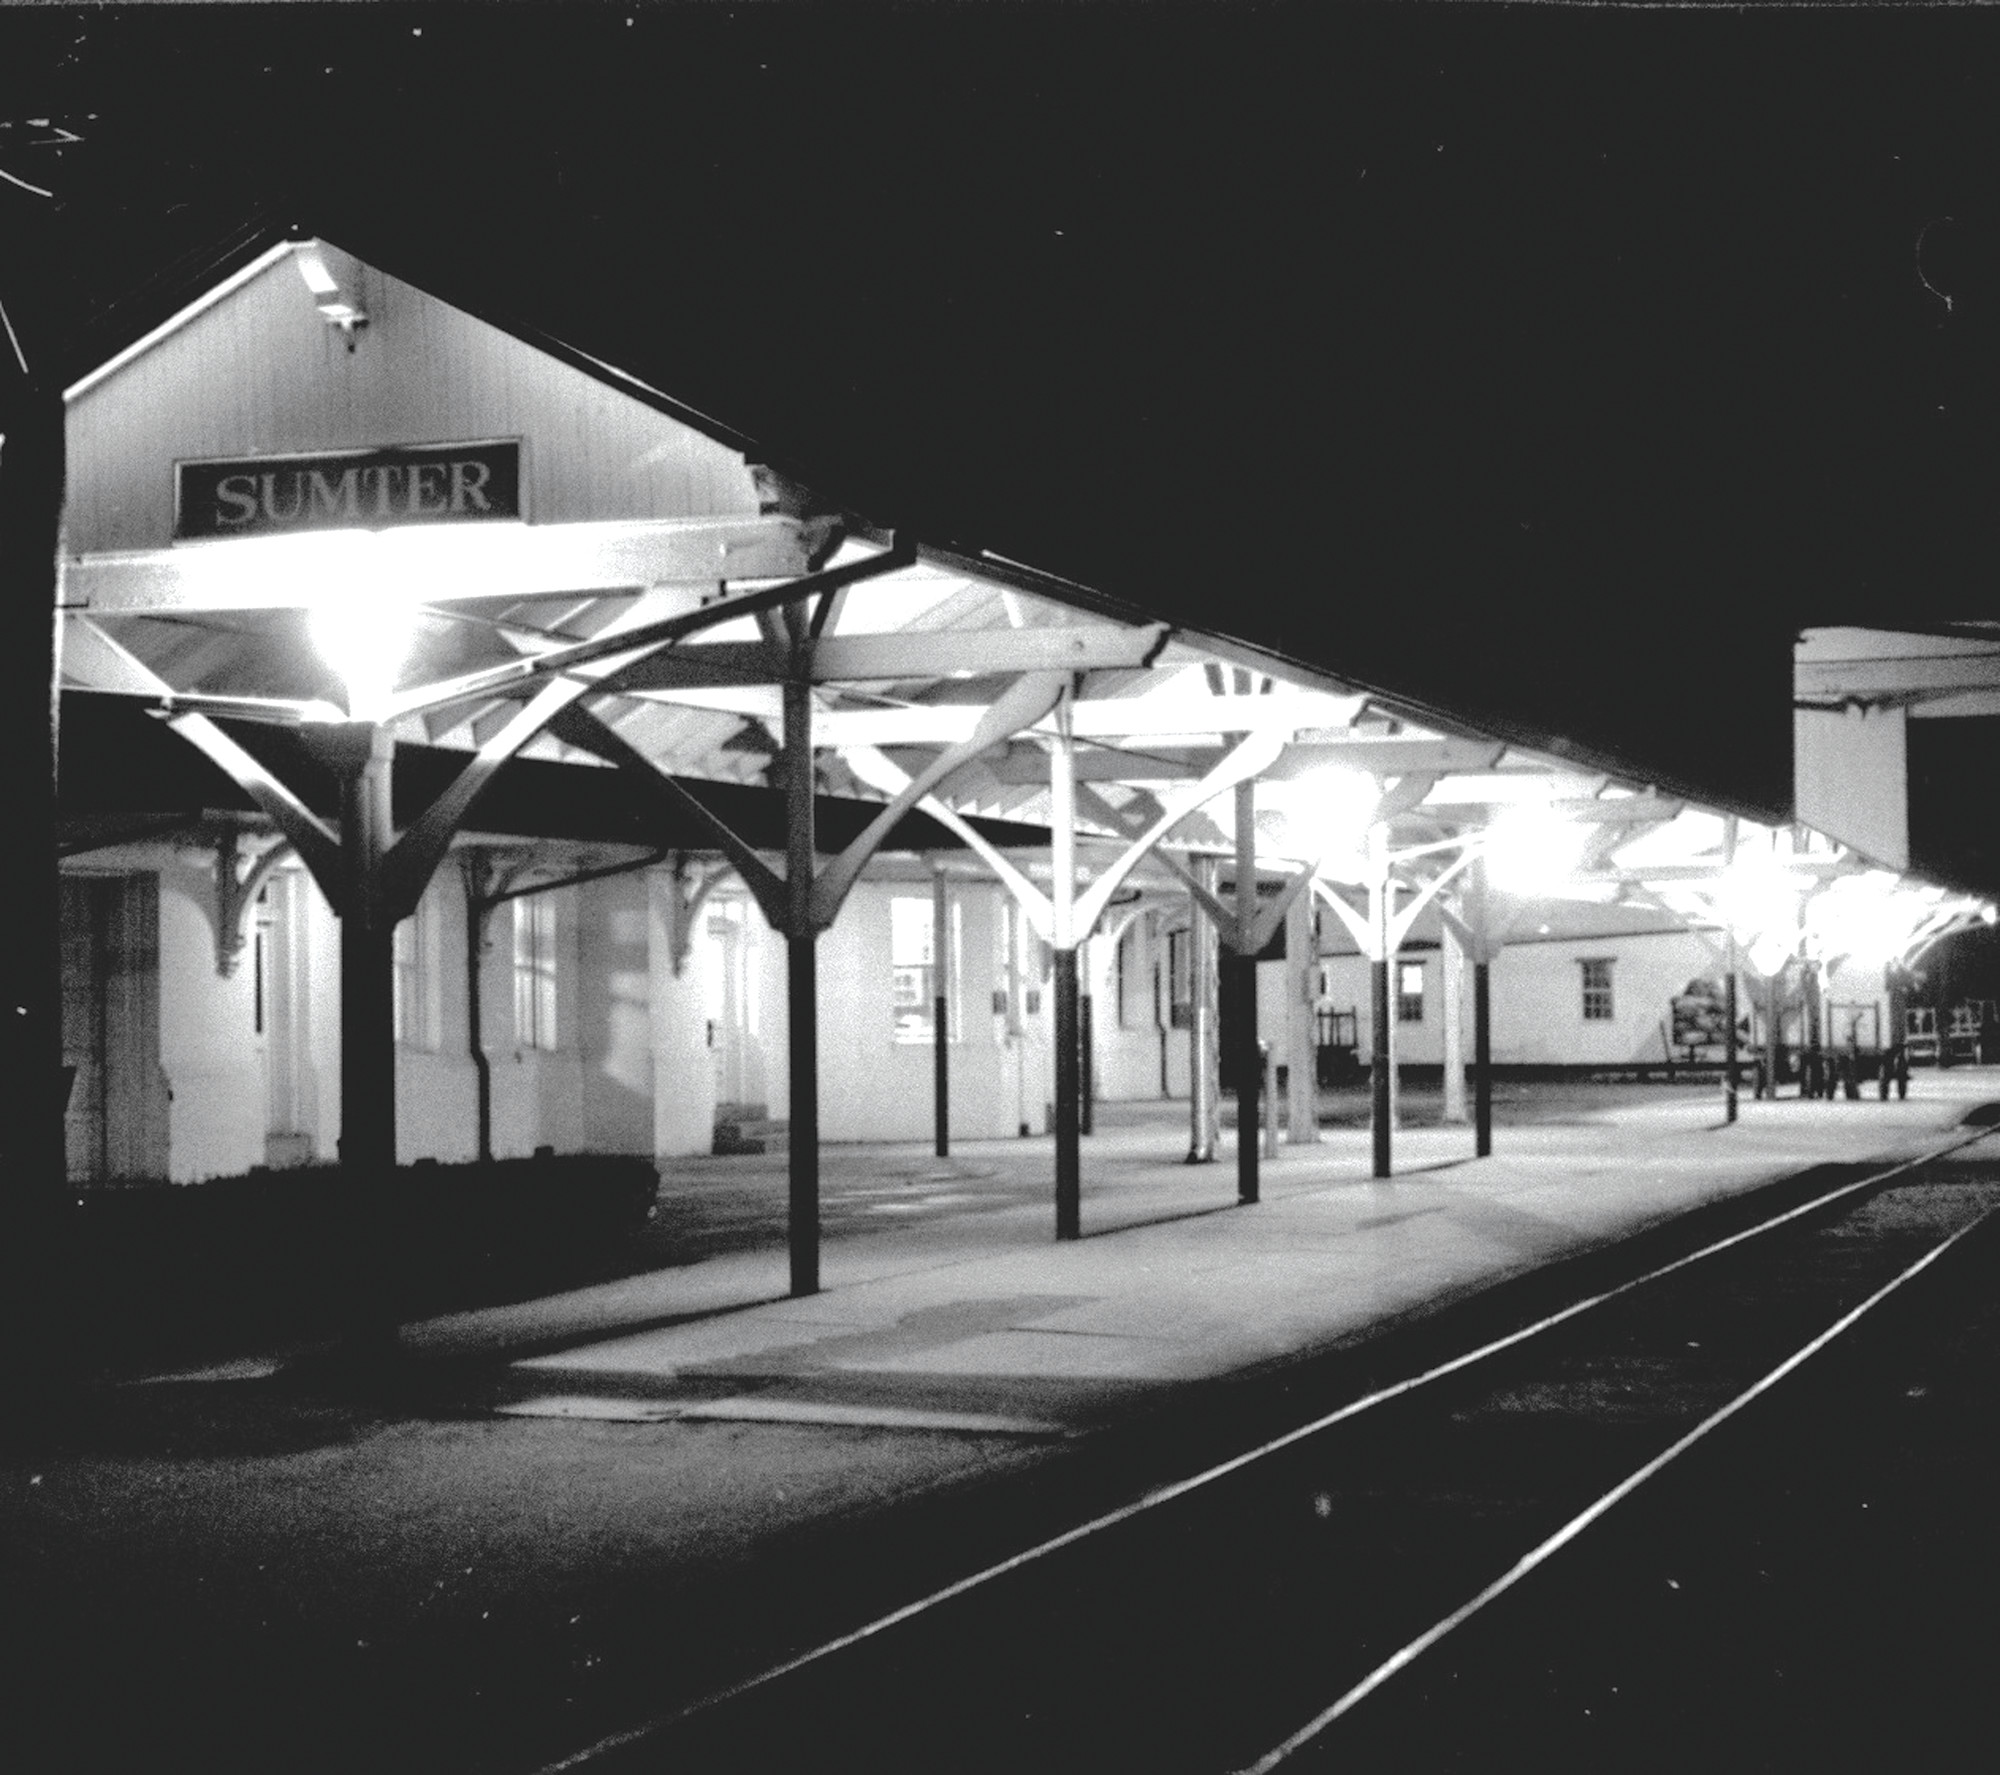 Sumter Train Depot is seen at night.